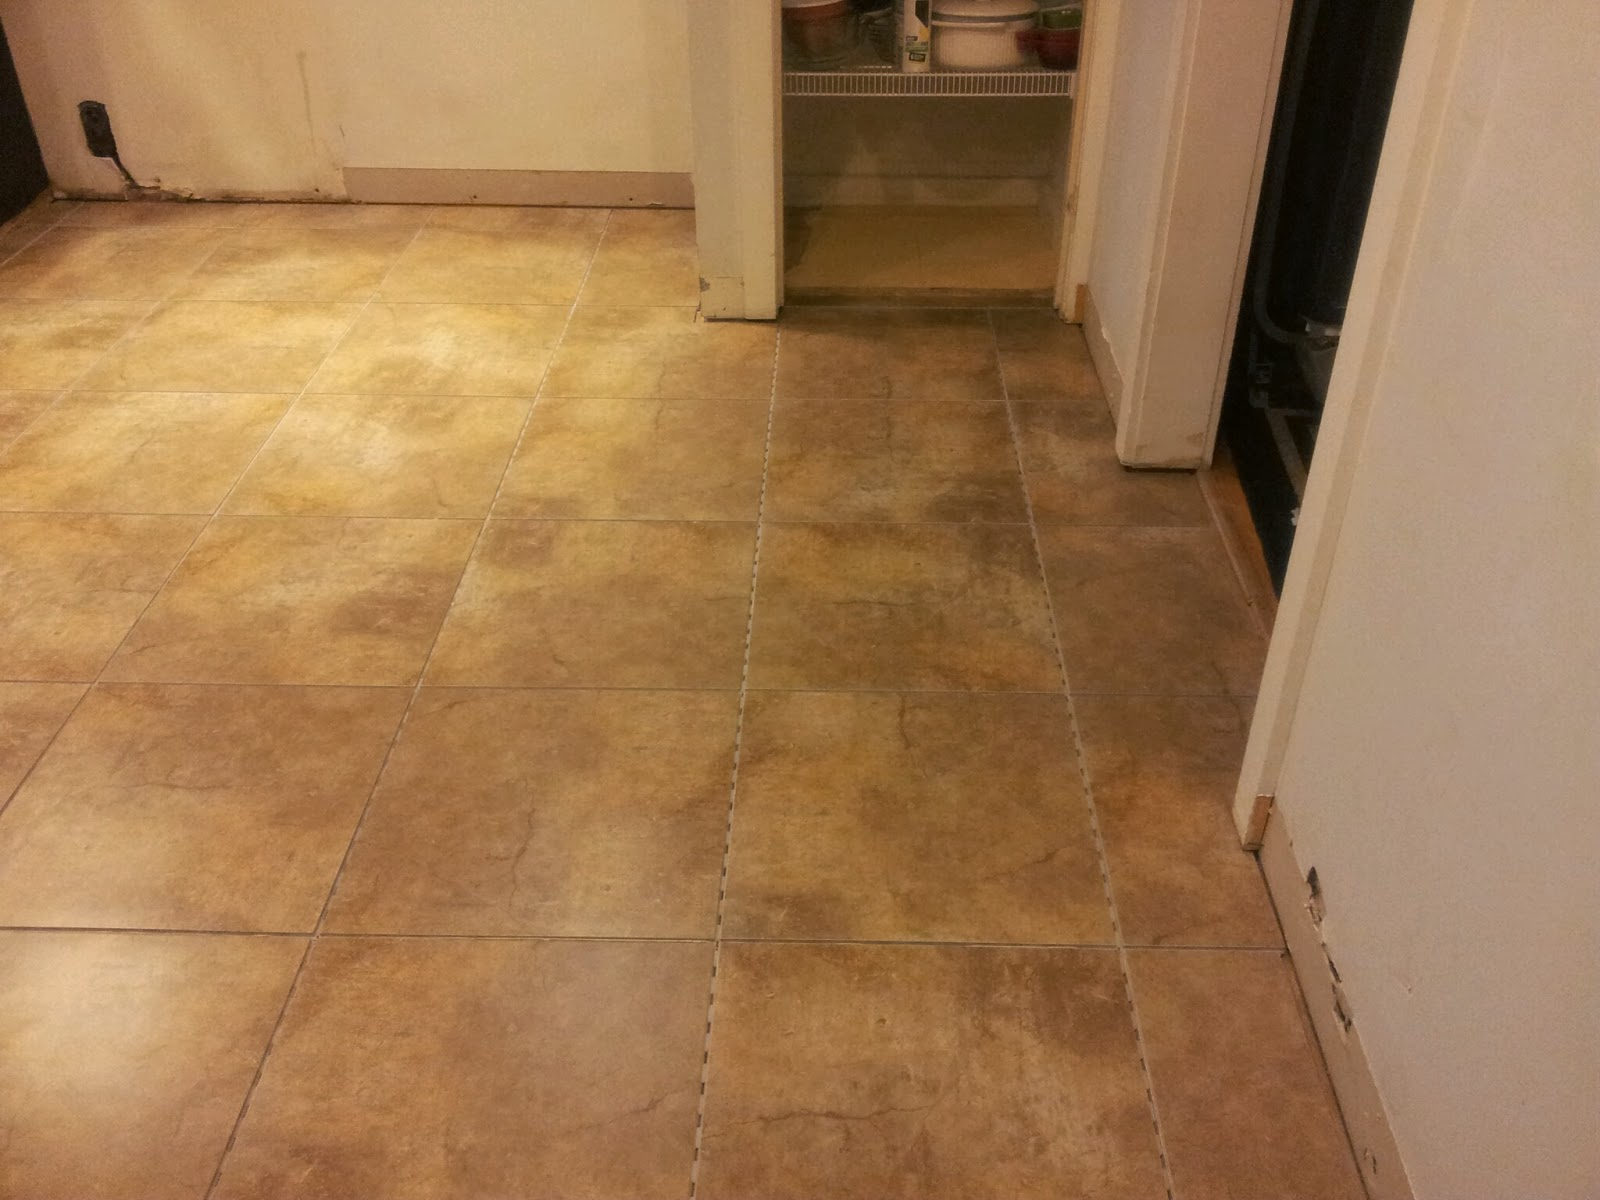 Installing snapstone kitchen floor tile for our home remodel ian snapstone floating tile dailygadgetfo Image collections